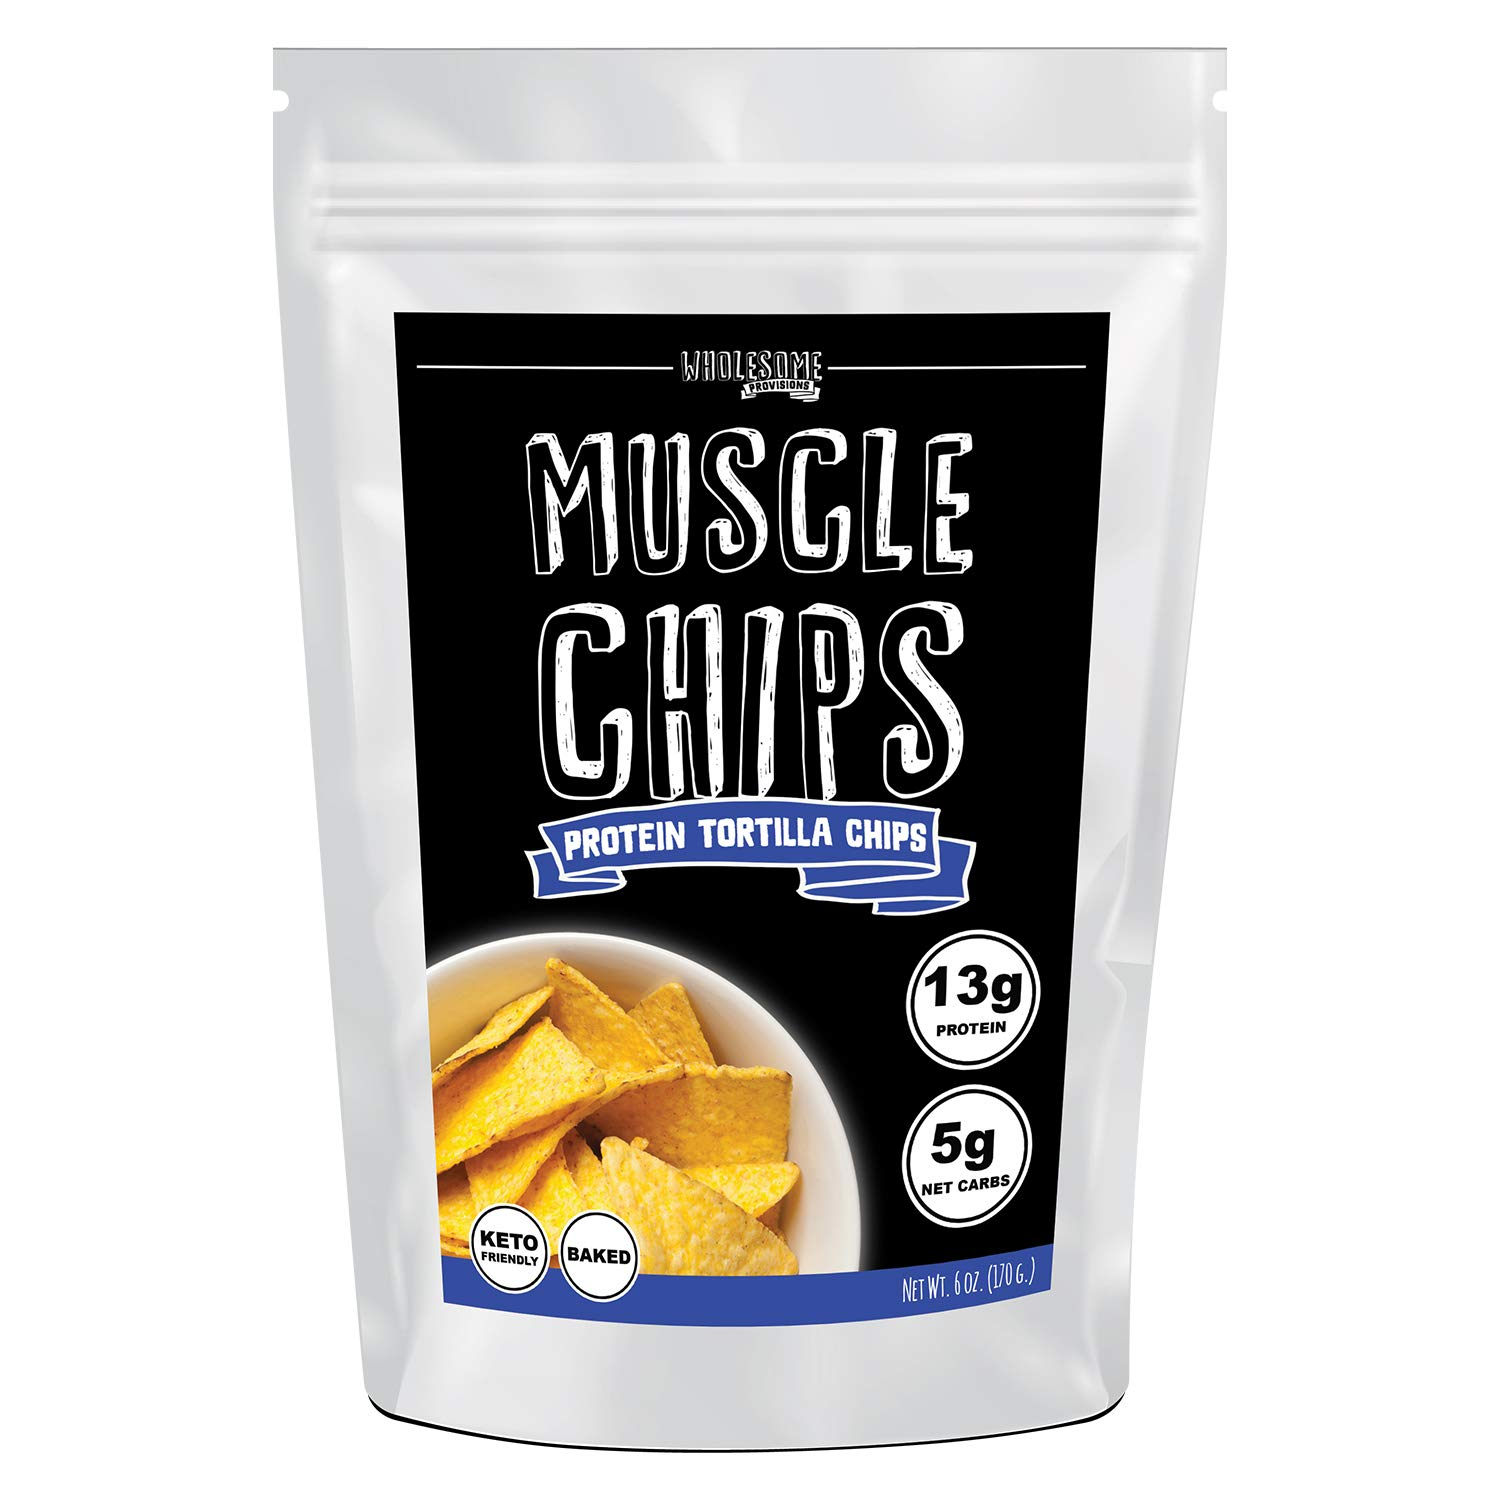 Protein Chips, 13g Protein, 5g Net Carbs, Keto Snacks, Low Carb Snacks, Protein Tortilla Chips, Muscle Chips, Baked Not Fried (1 Pack)